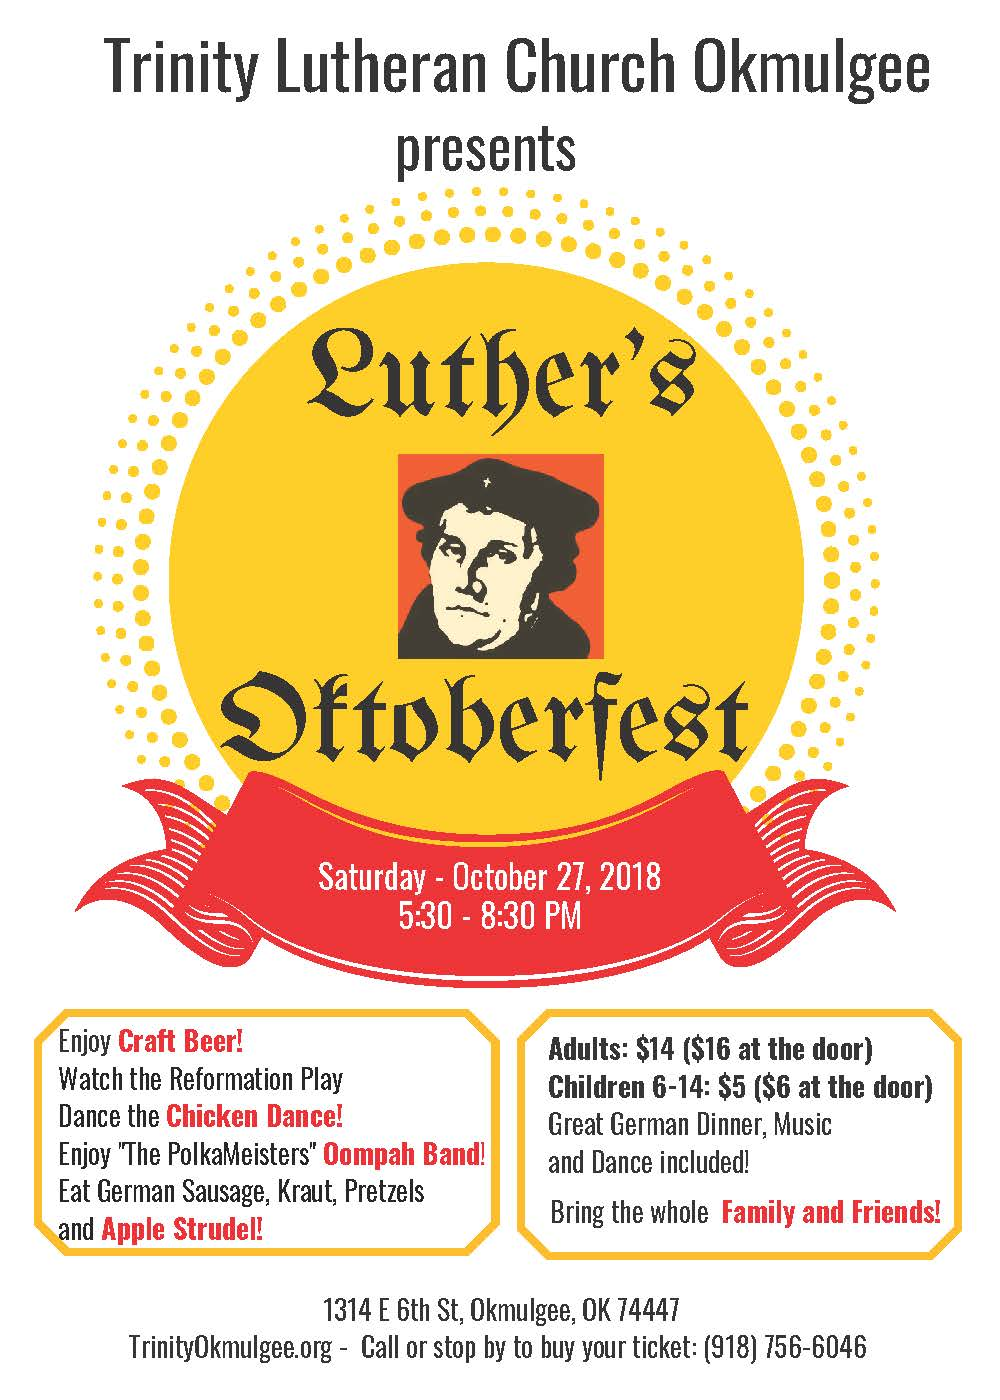 Luther's Oktoberfest flyer 2018.jpg